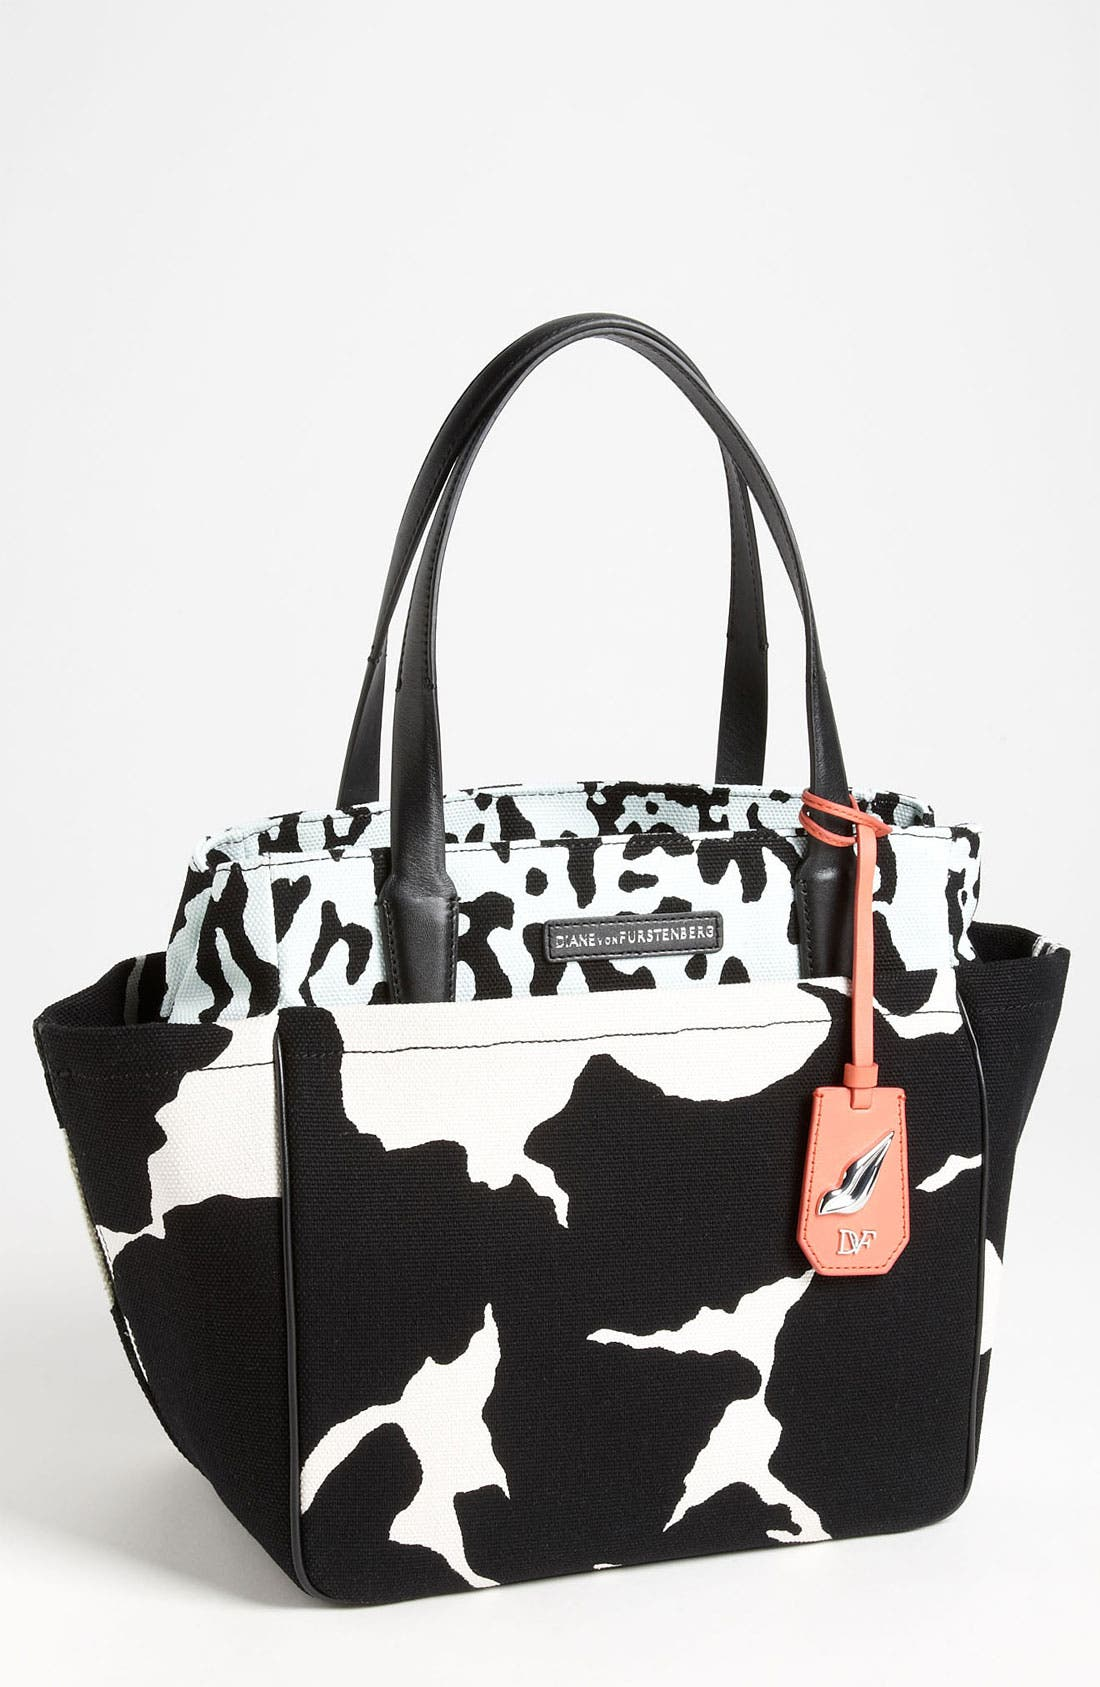 Alternate Image 1 Selected - Diane von Furstenberg 'On The Go' Printed Canvas Tote